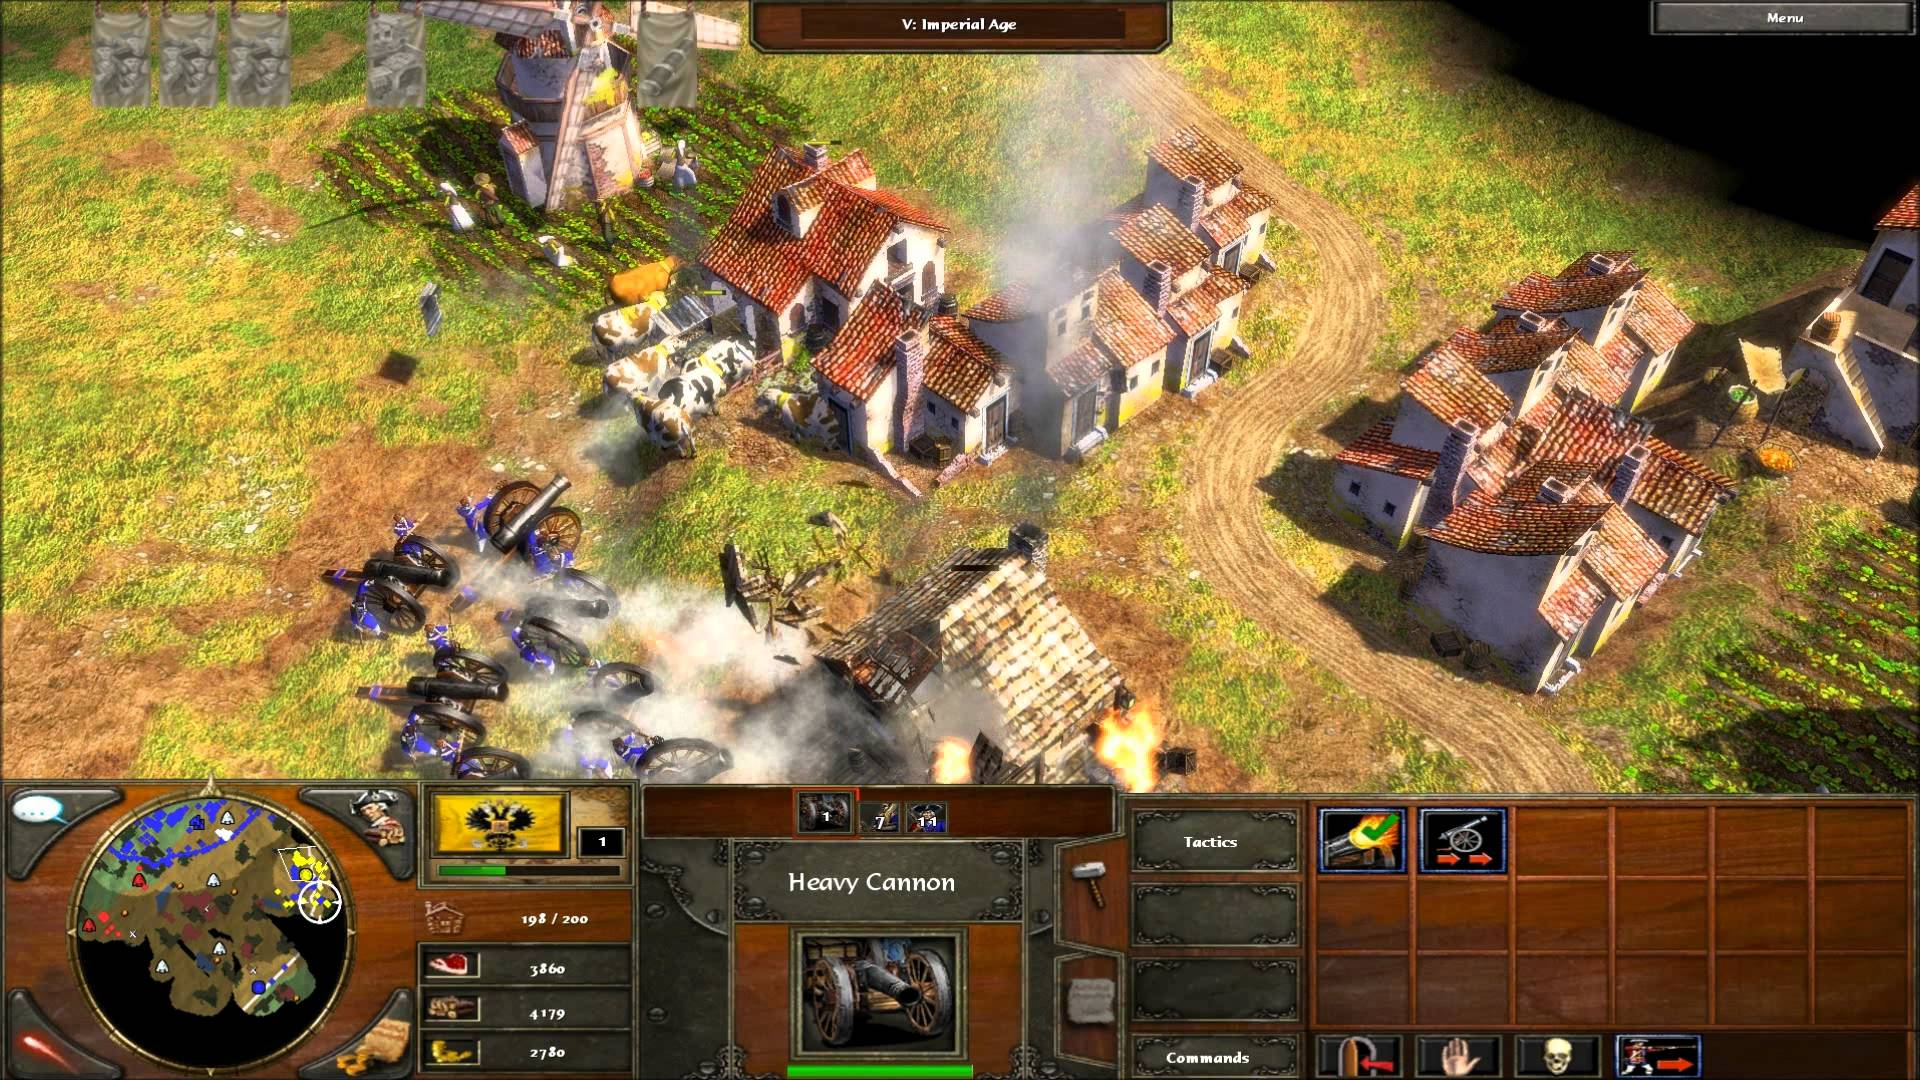 ... View a larger version of Age of Empires III: Complete Collection 6/6